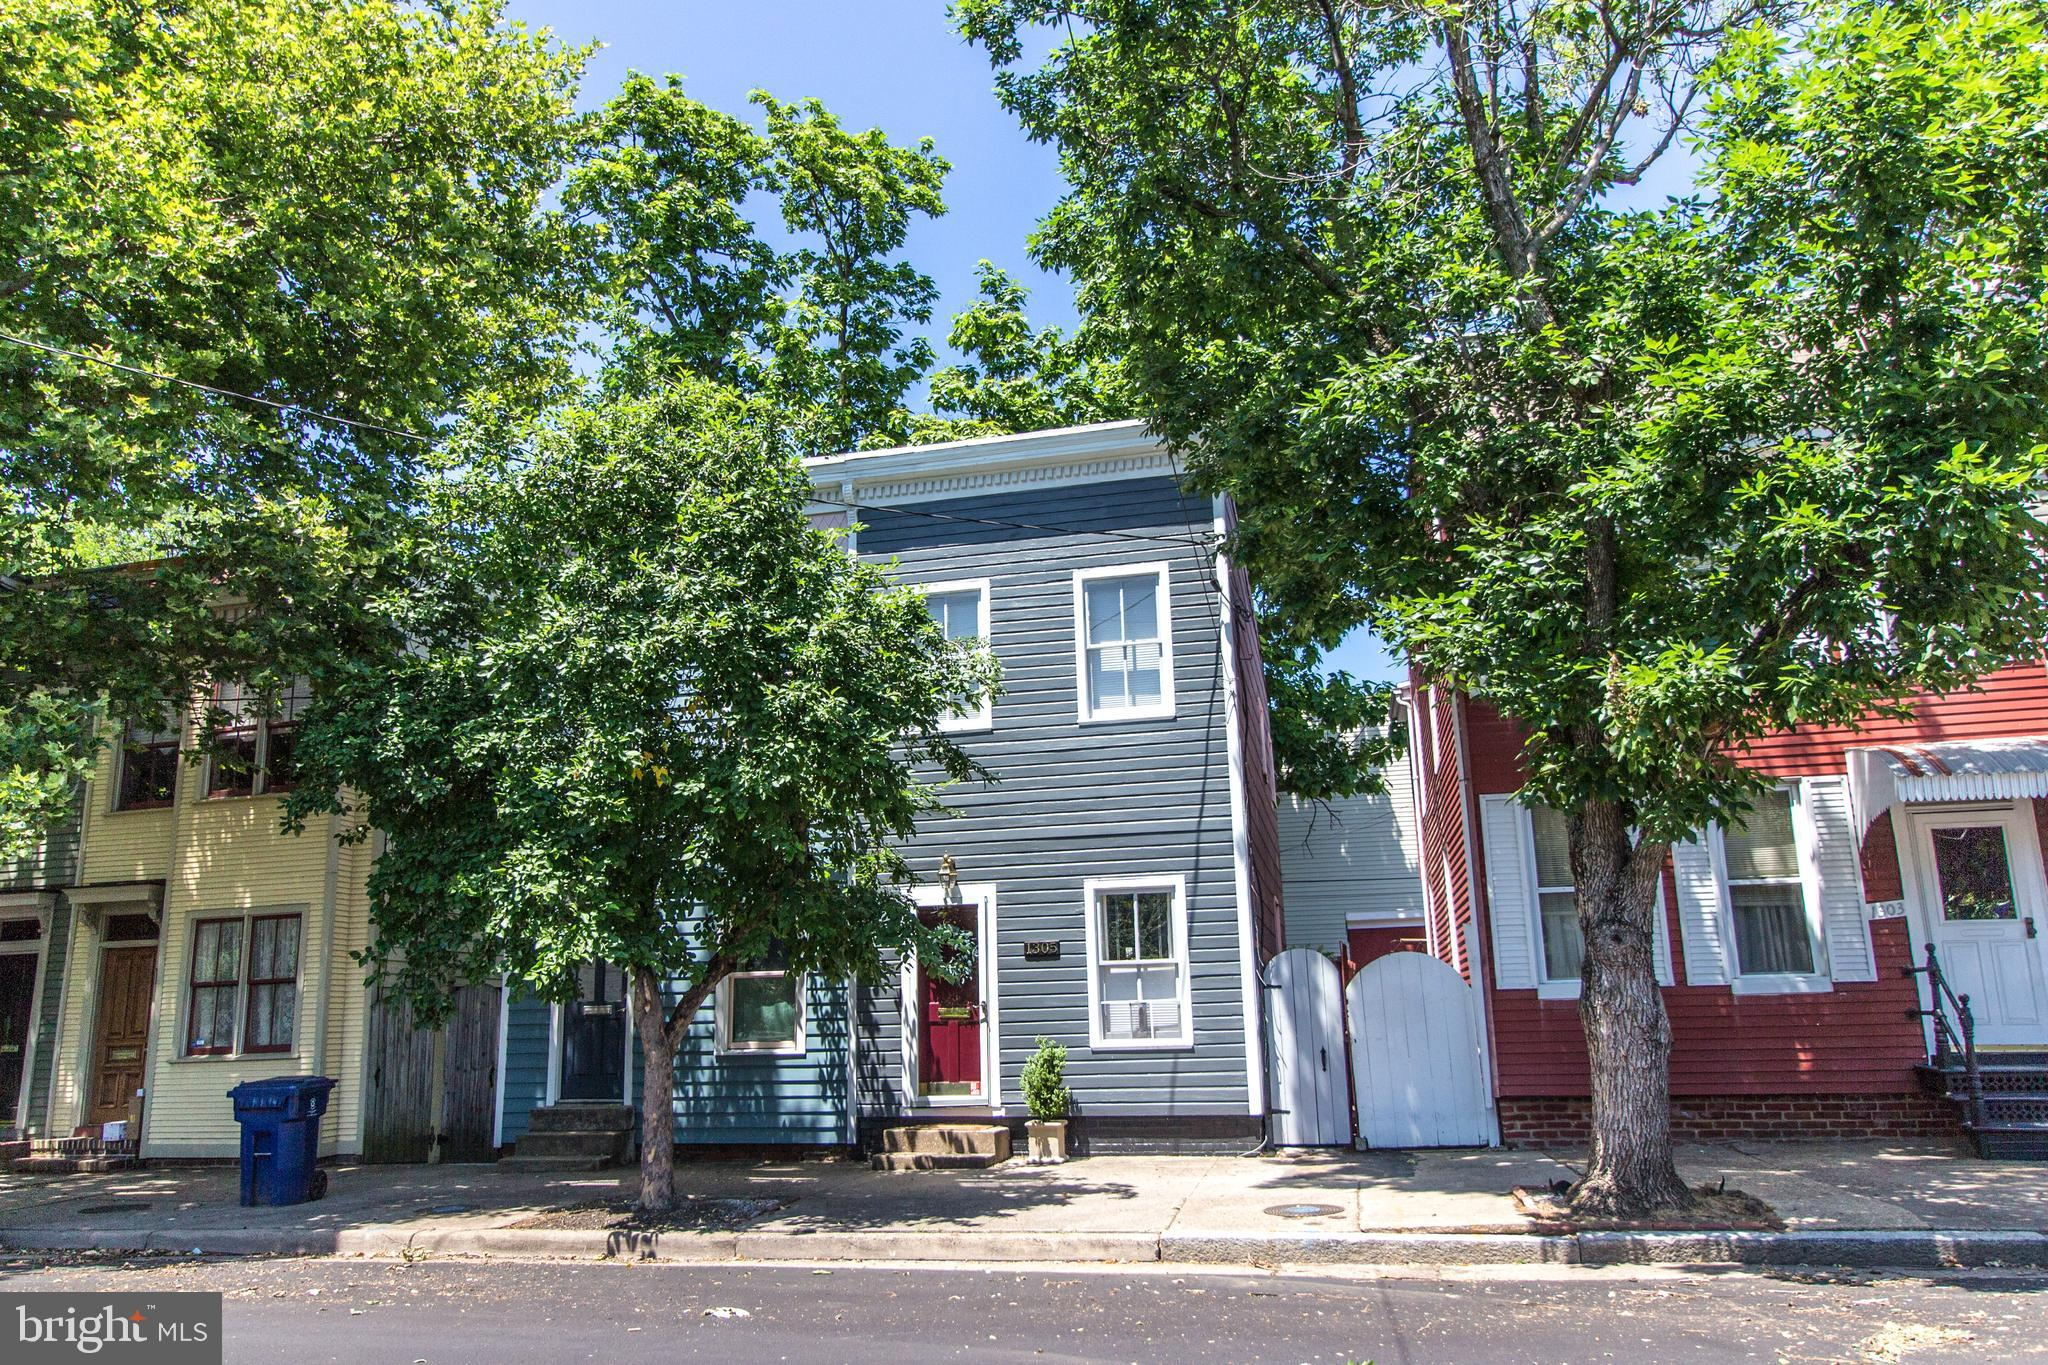 OPEN HOUSE 9/8/19 12-3pm- NEW LOOK/NEW PRICE! This beautiful quaint townhome in the heart of historic old town offers 3 bedrooms and 1 fully renovated bath, entertain in your bright and airy living room with gleaming wood floors and high ceilings, newer AC/Furnace. Spacious fully fenced rear with custom patio title plus off street parking. Enjoy the fantastic location! Just blocks from 2 metro stations Braddock and King Street which take you directly into Crystal City and Amazon HQ2 and don~t forget to catch the free trolley at King street. Just few blocks to Old Town shops and restaurants. Don~t miss this great home!